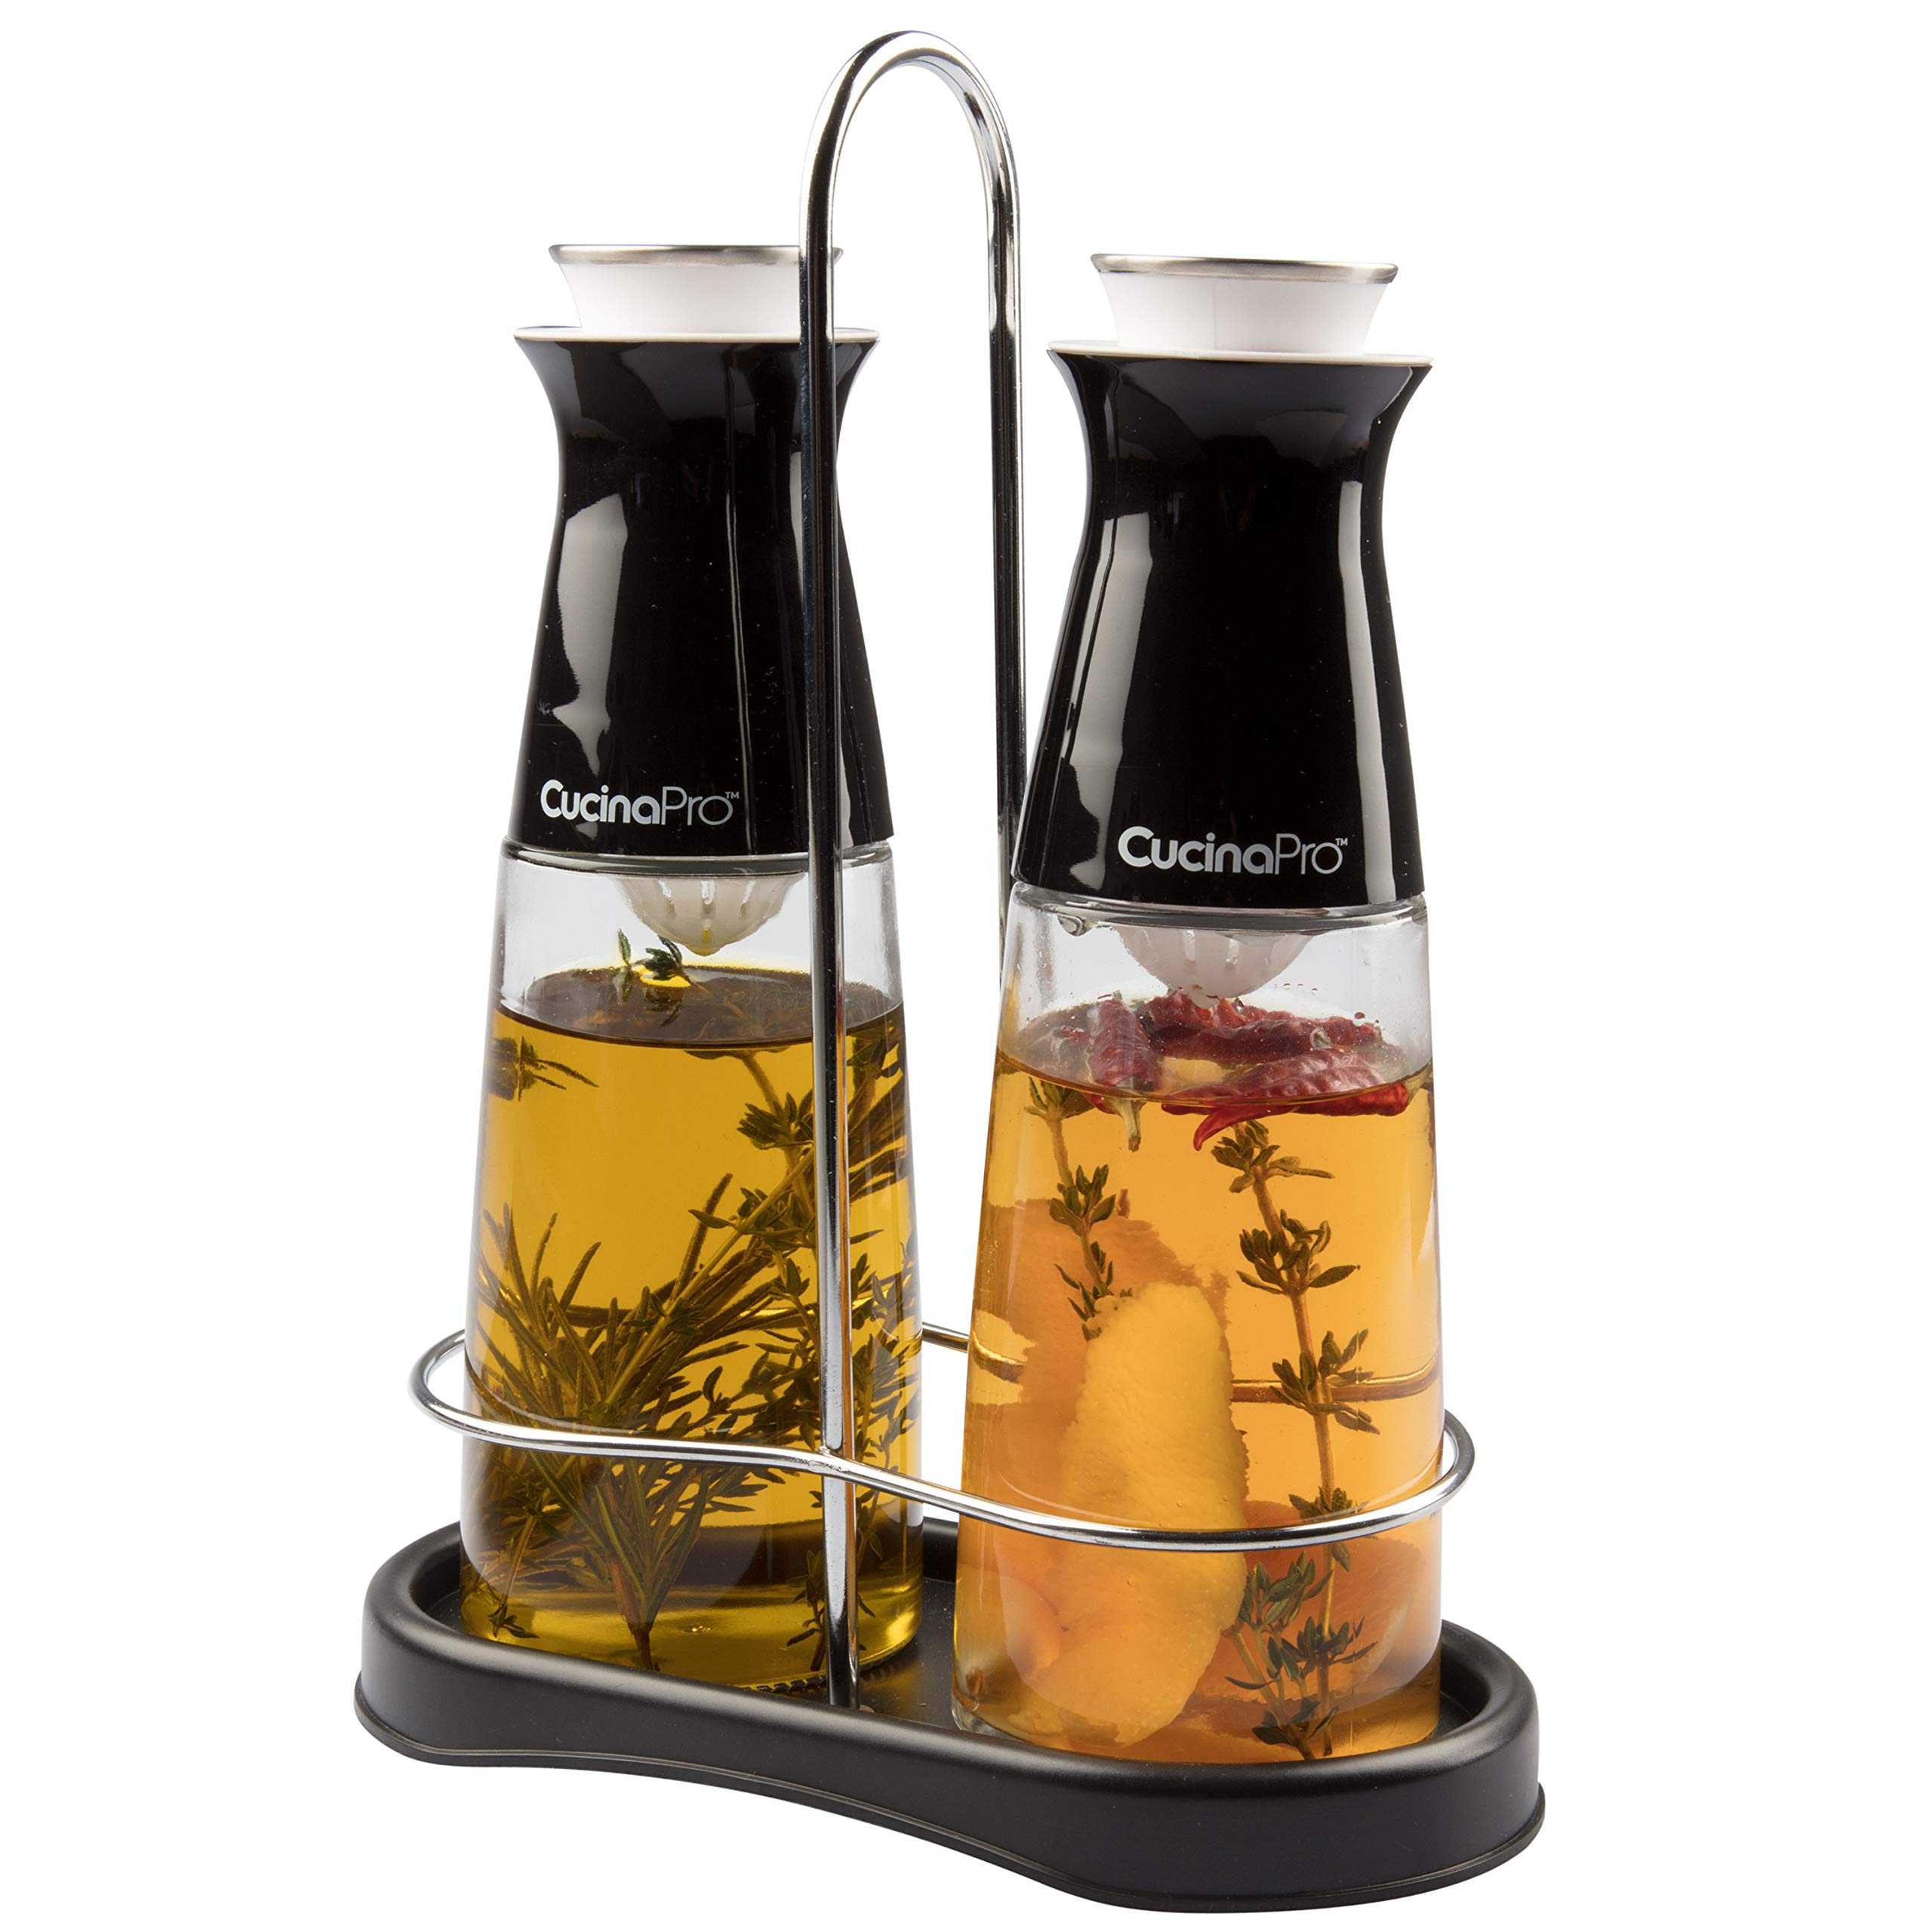 Olive Oil and Vinegar Infuser Bottle Dispenser Set of 2- Glass Dual Cruet Set (10 oz) w Built In Filter for Infusion and Clean Pouring- Storage Rack and Olive Oil/Vinegar Recipes Included by CucinaPro (Image #3)